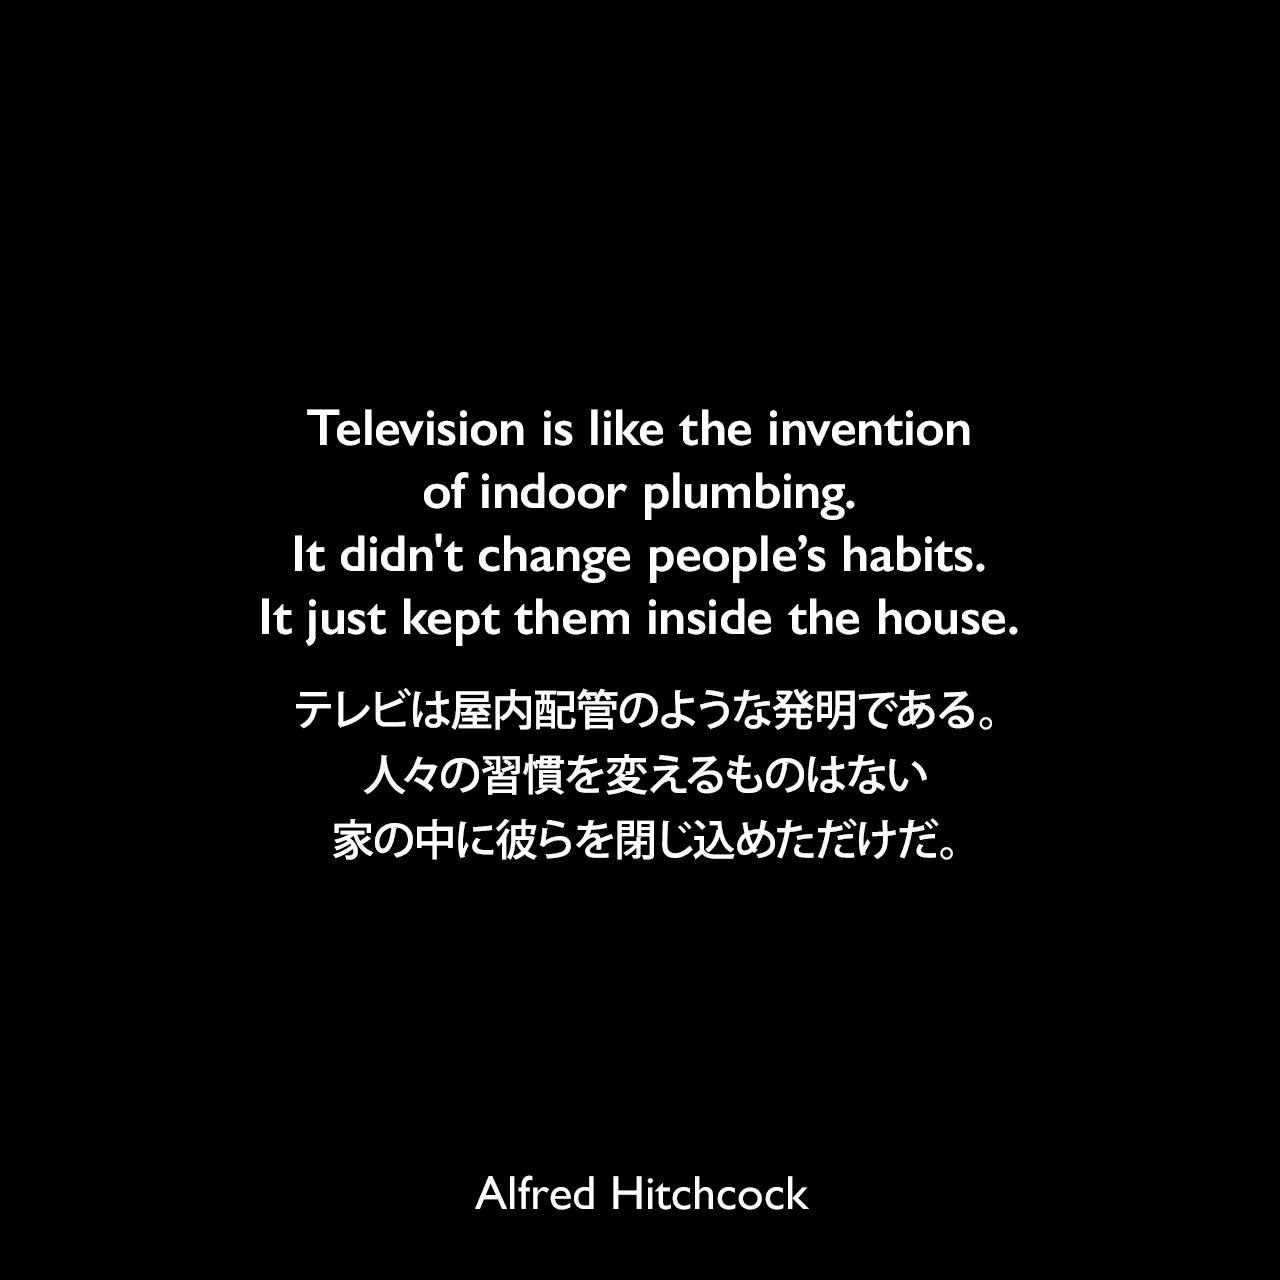 Television is like the invention of indoor plumbing. It didn't change people's habits. It just kept them inside the house.テレビは屋内配管のような発明である。人々の習慣を変えるものはない、家の中に彼らを閉じ込めただけだ。- 1965年8月 アメリカの新聞「NY Journal-American」よりAlfred Hitchcock